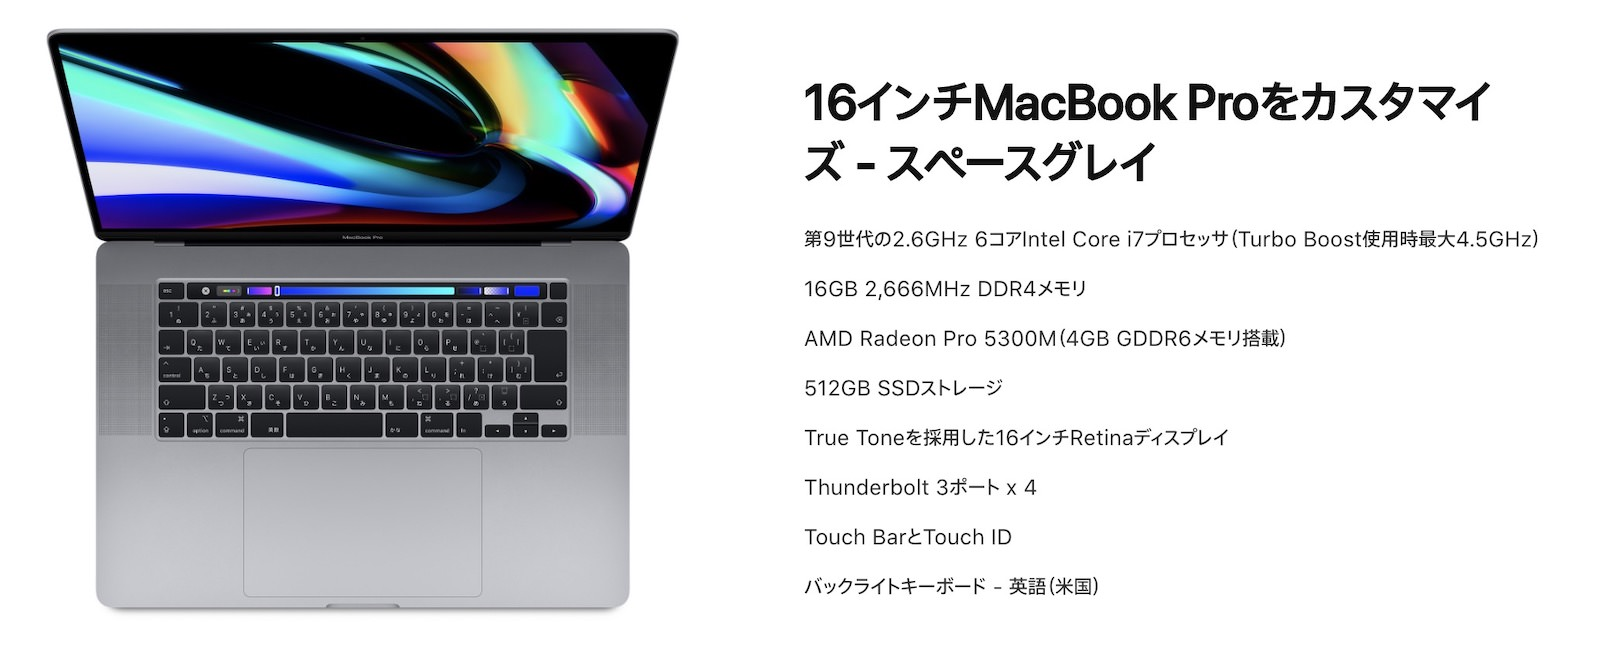 macbook-pro-lowend-moderl.jpg